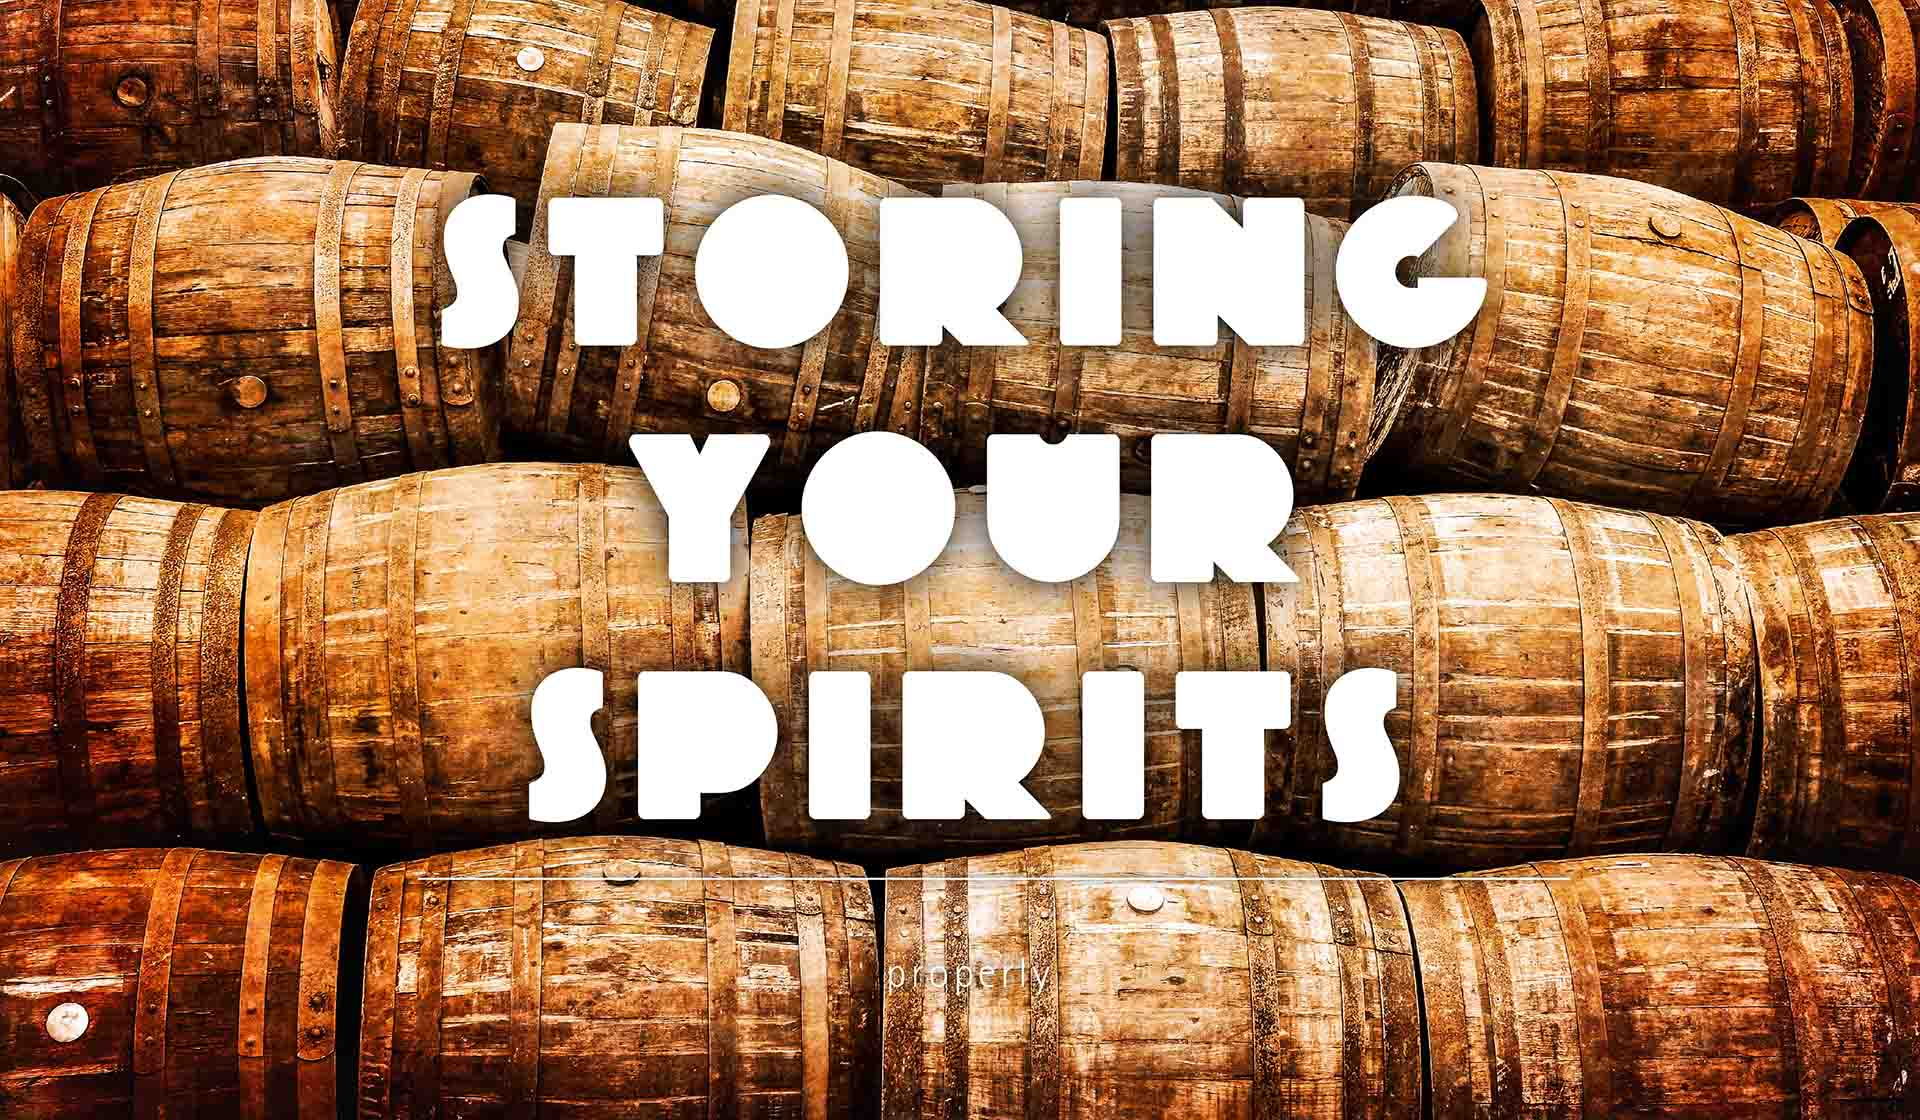 Storing Your Spirits Properly